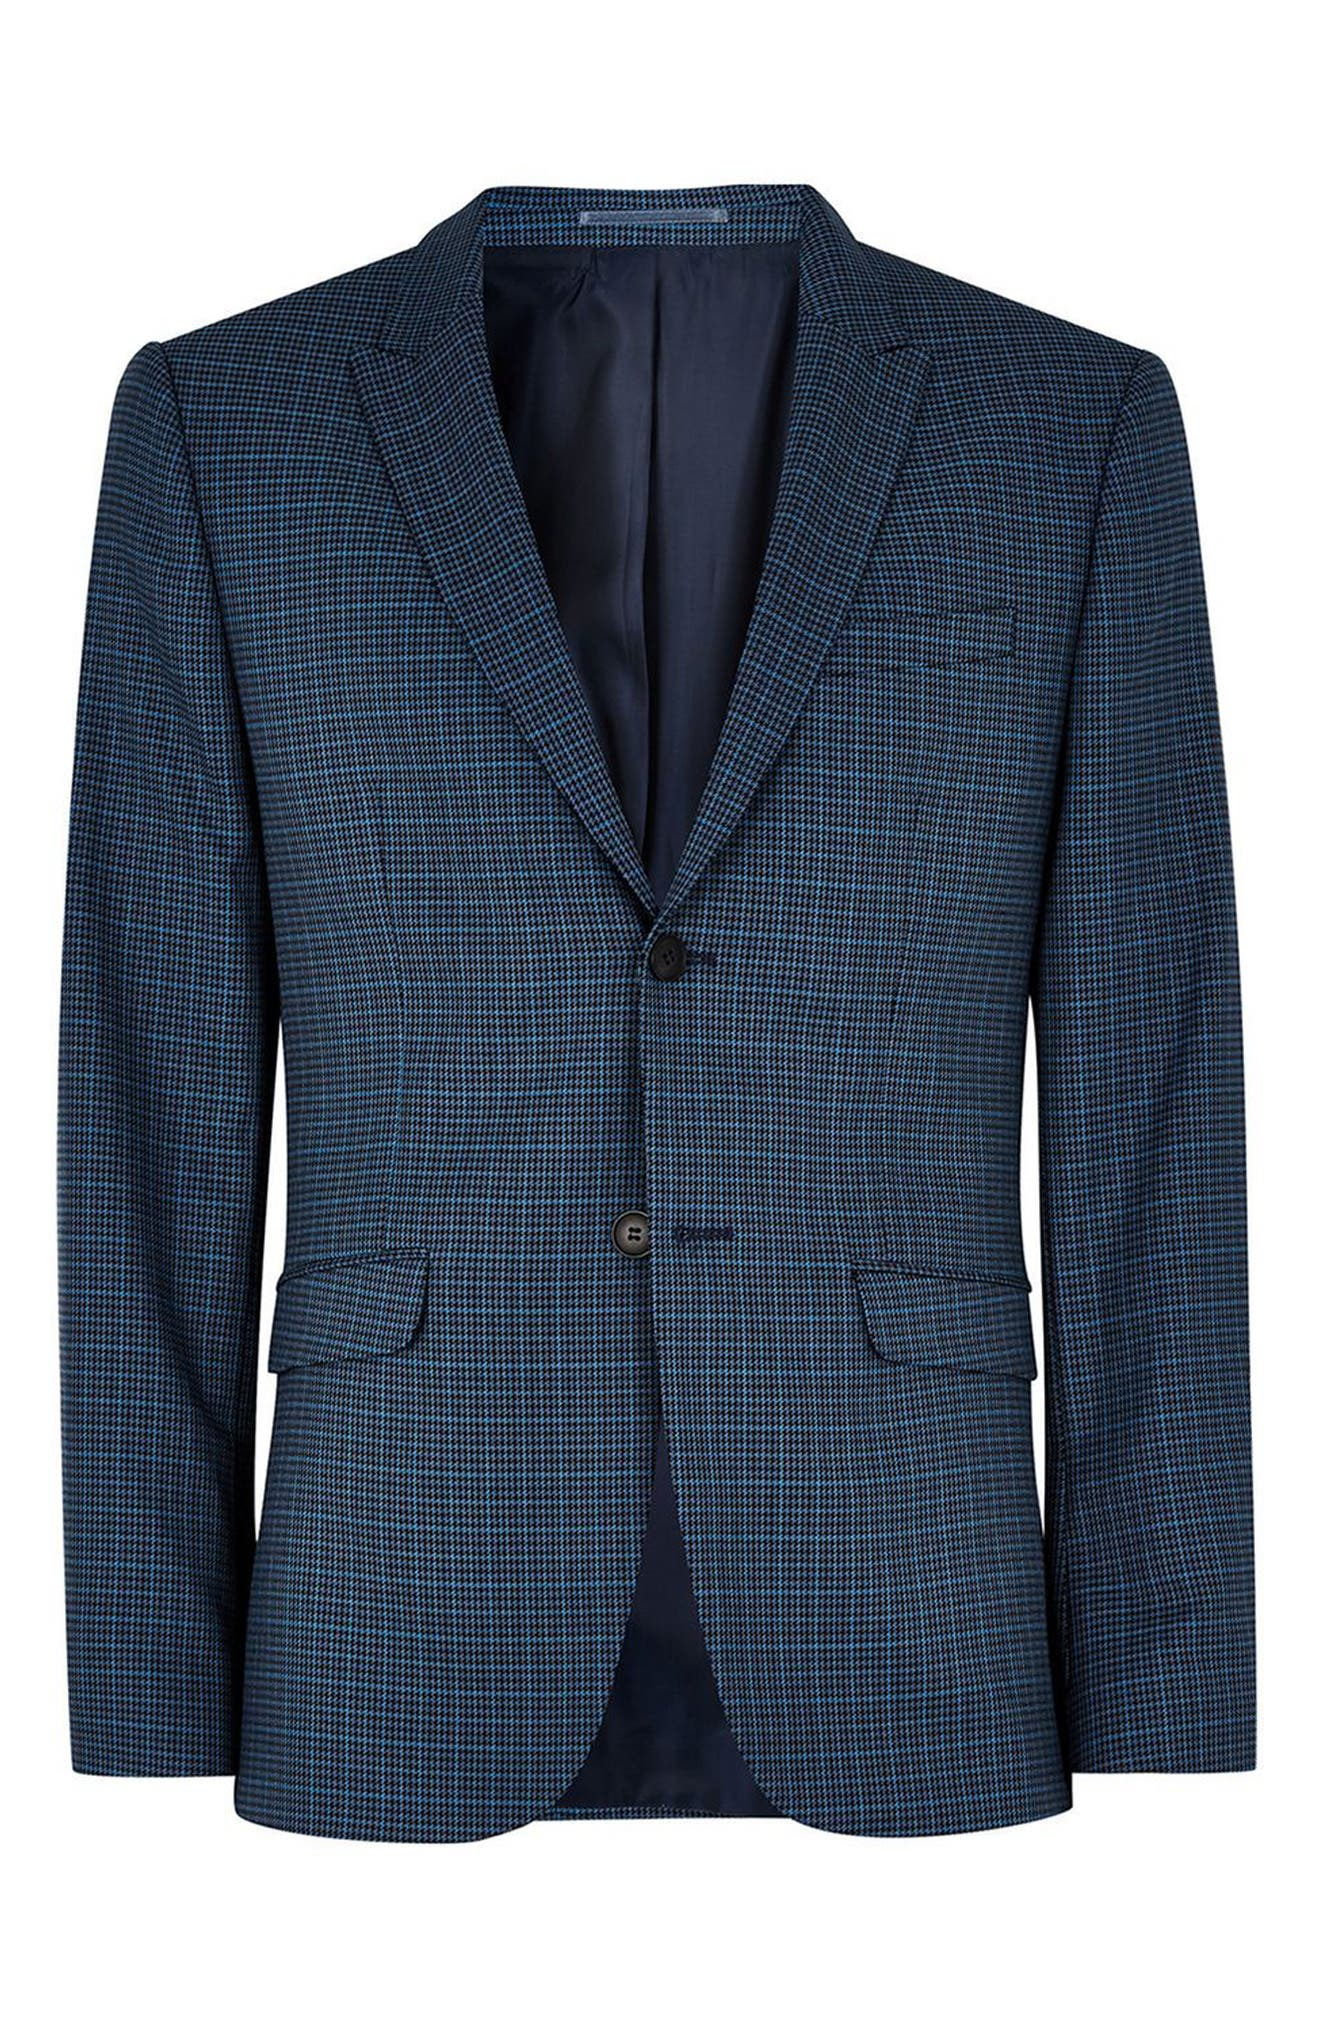 Check Skinny Fit Suit Jacket,                             Alternate thumbnail 3, color,